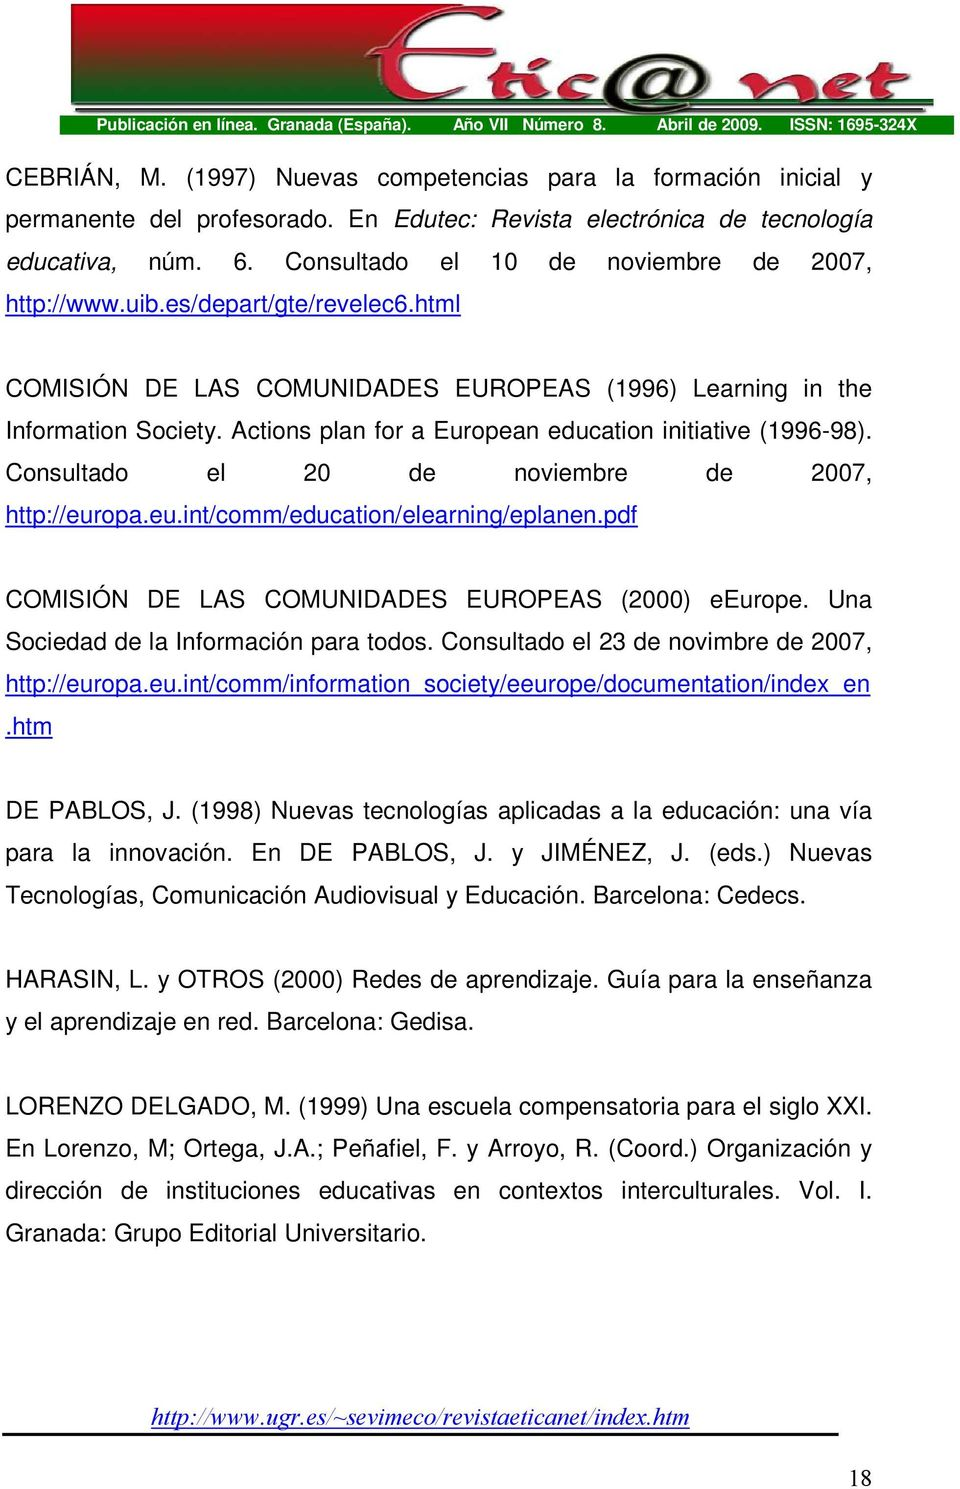 Actions plan for a European education initiative (1996-98). Consultado el 20 de noviembre de 2007, http://europa.eu.int/comm/education/elearning/eplanen.